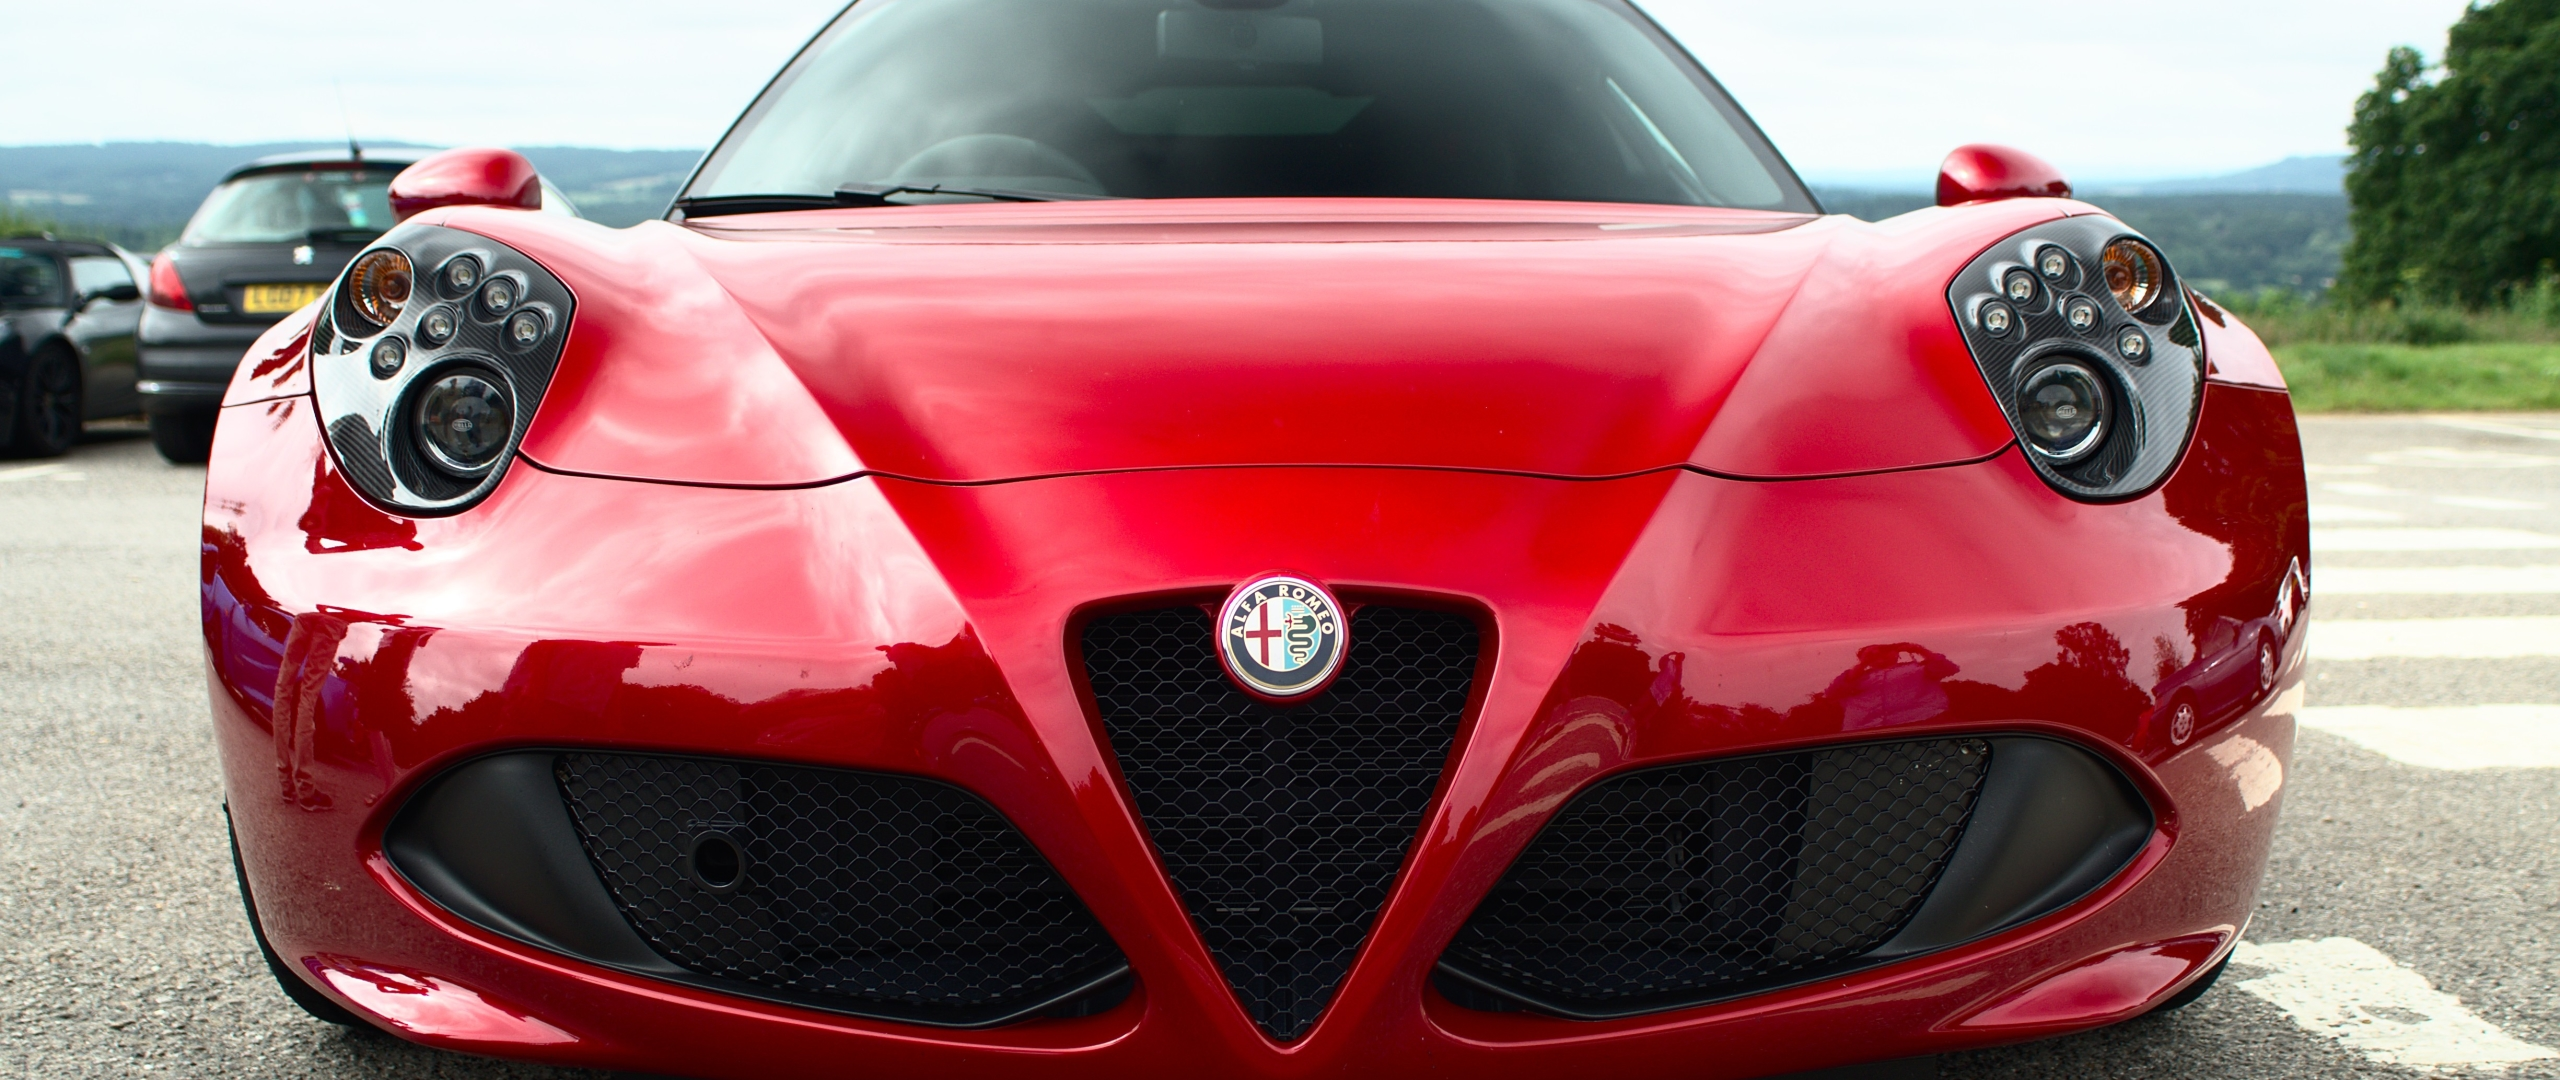 2560x1080 Alfa Romeo Red Front View 2560x1080 Resolution Wallpaper Hd Cars 4k Wallpapers Images Photos And Background